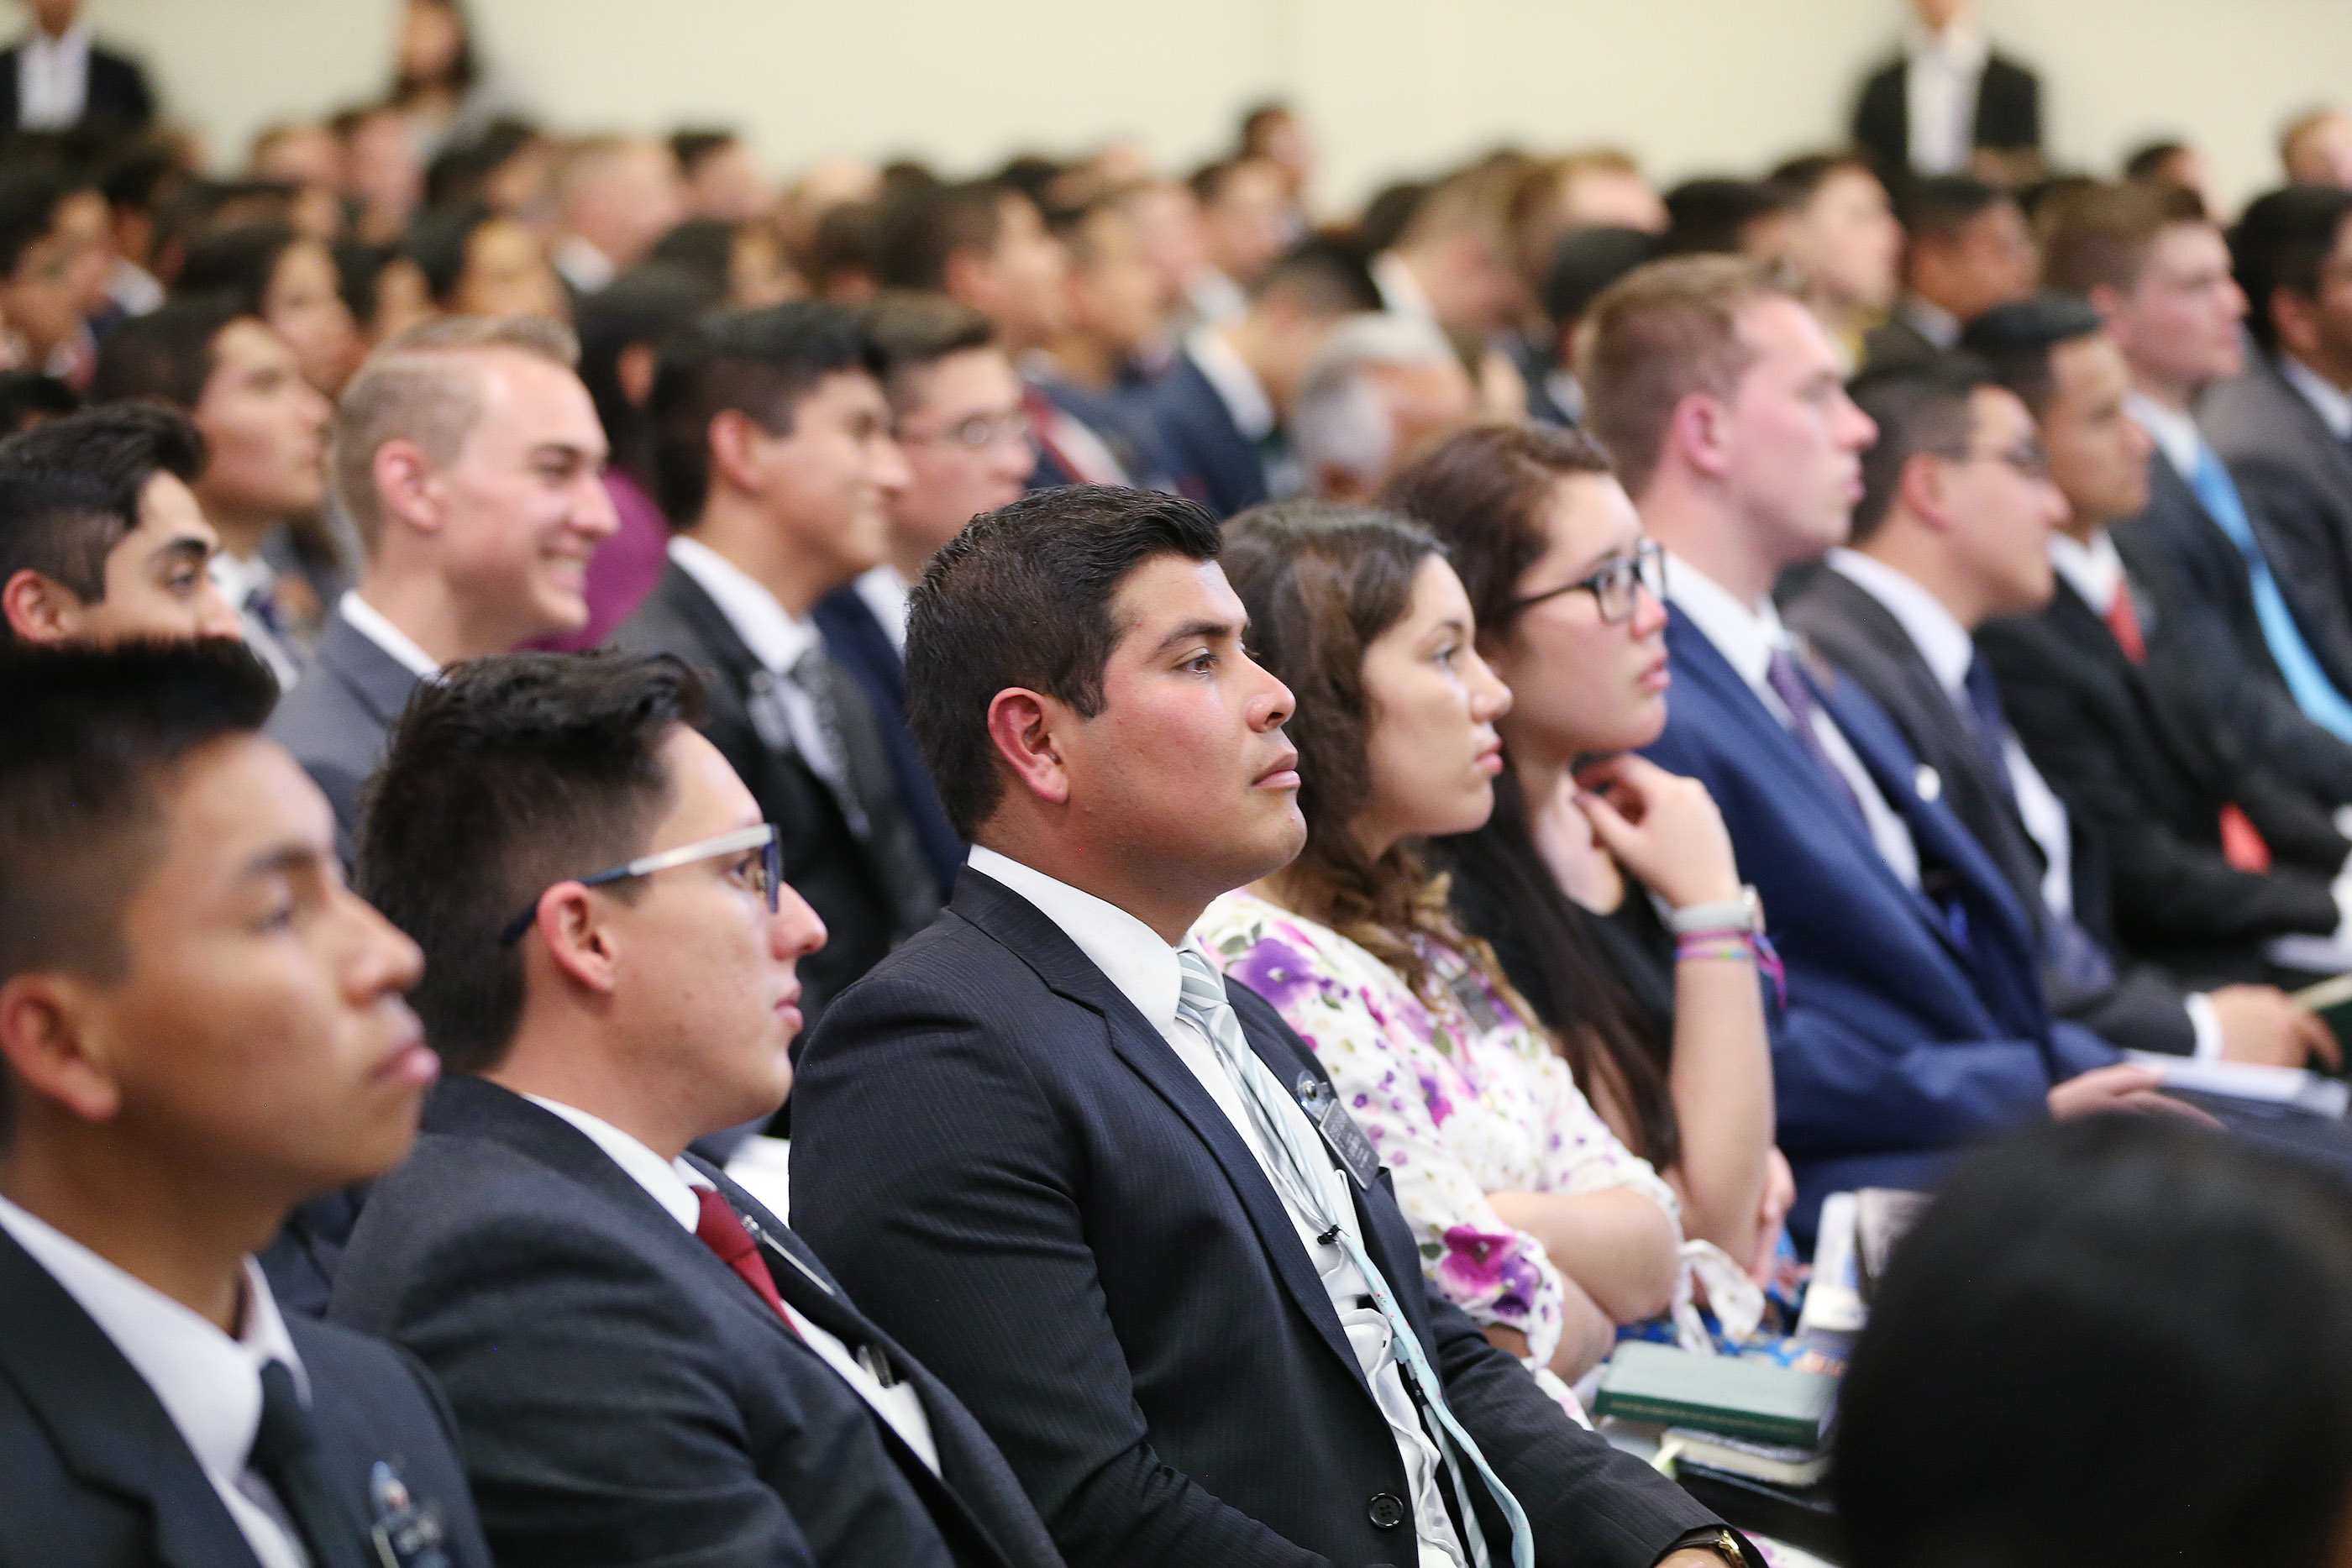 Missionaries listen during their meeting with President Russell M. Nelson of The Church of Jesus Christ of Latter-day Saints and Elder Gary E. Stevenson of the Quorum of the Twelve Apostles in Lima, Peru, on Oct. 20, 2018.